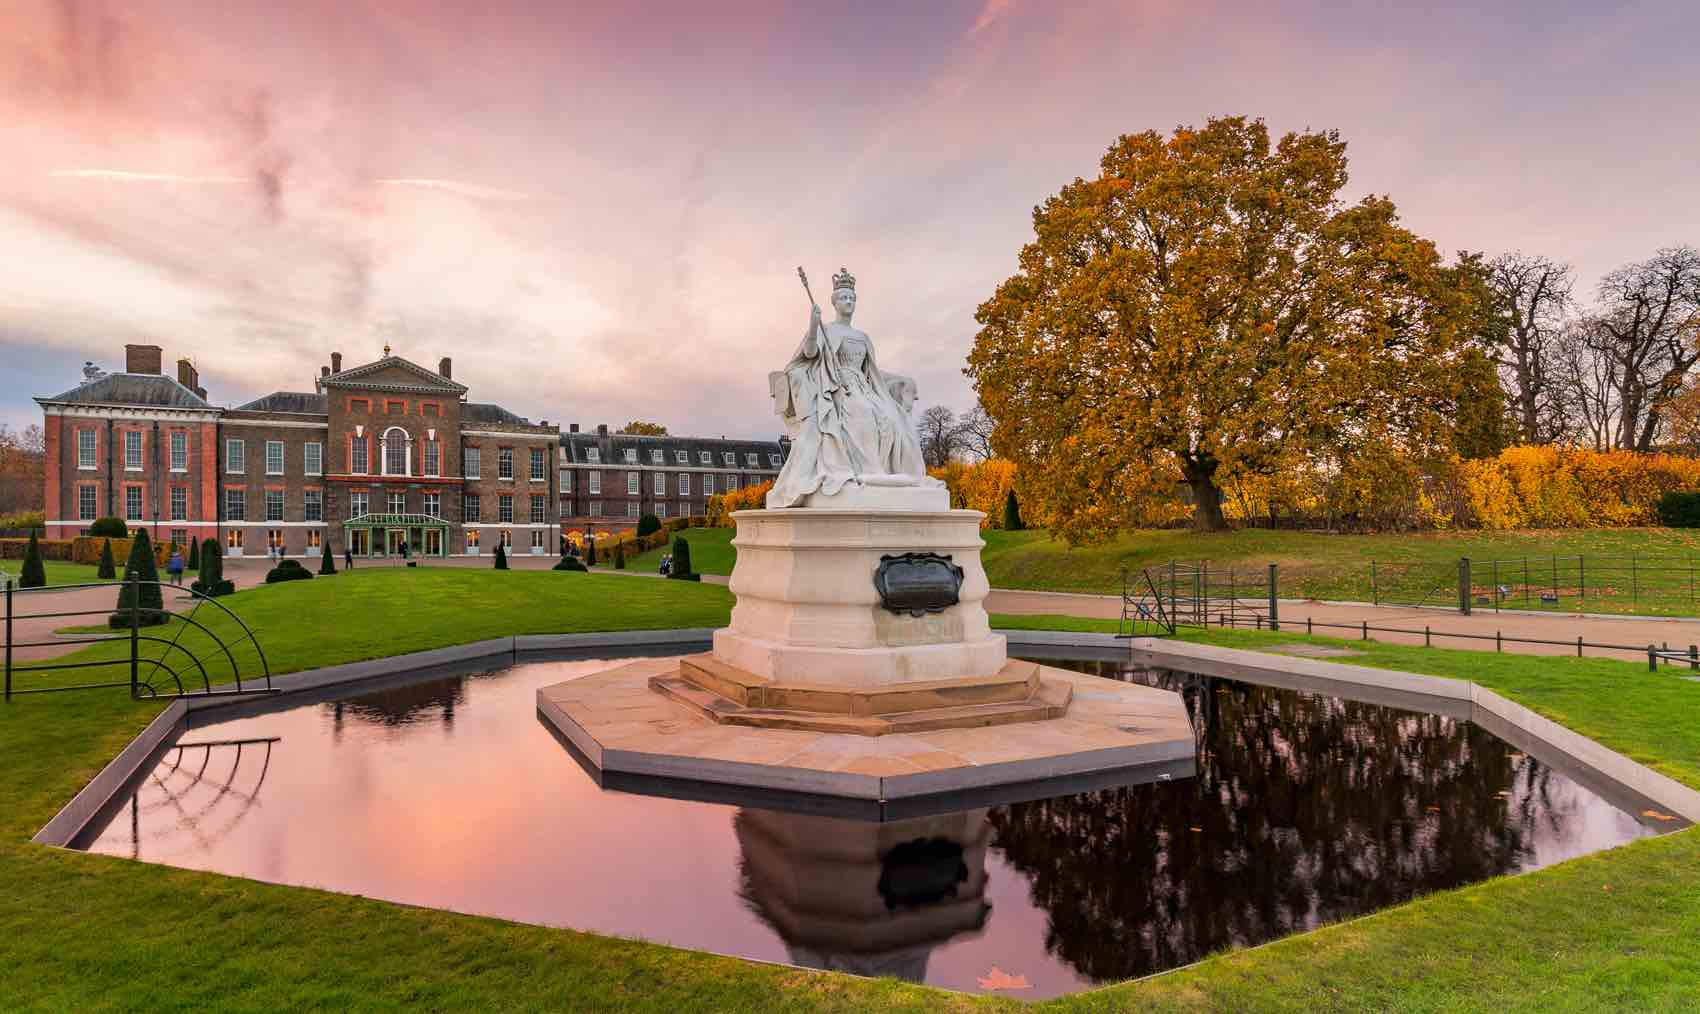 Kensington Gardens is planted with avenues of trees and ornamental flower beds